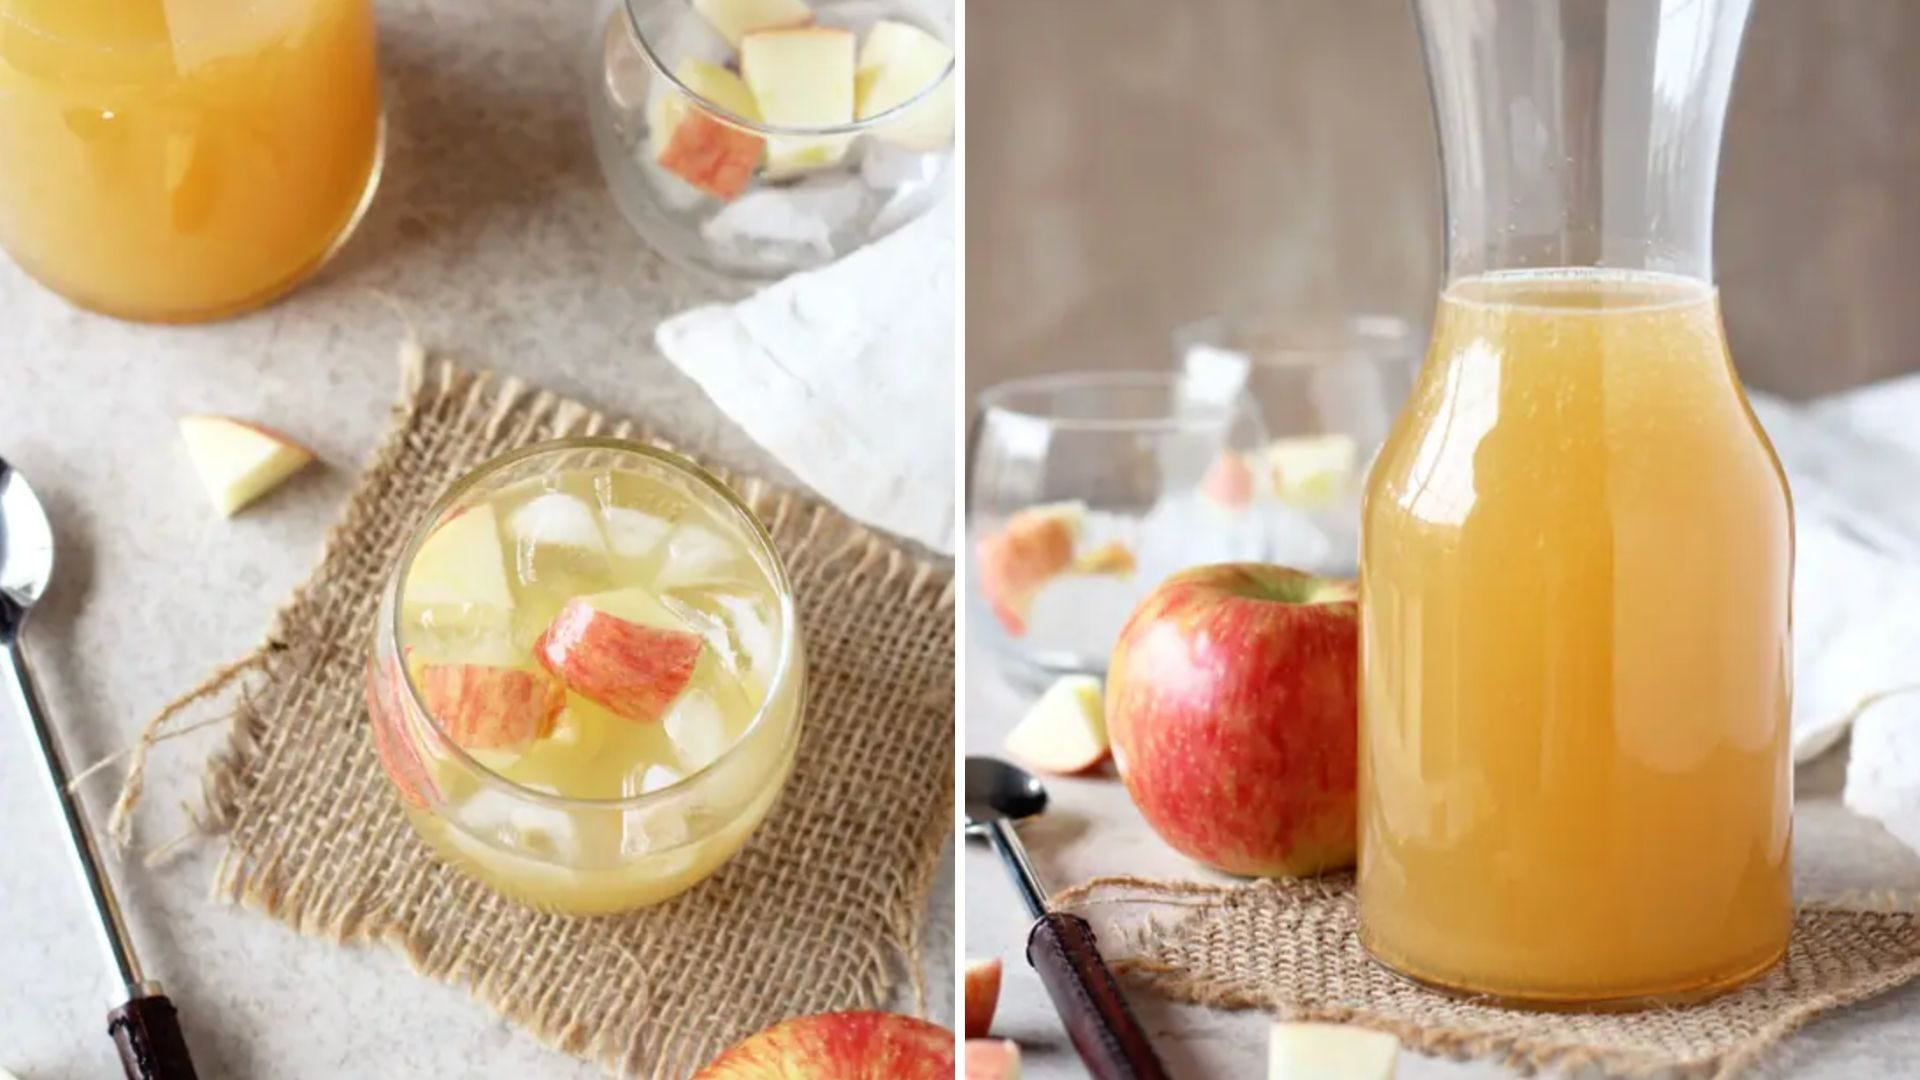 A glass with a yellow drink and apple chunks in it and a pitcher holding the same drink